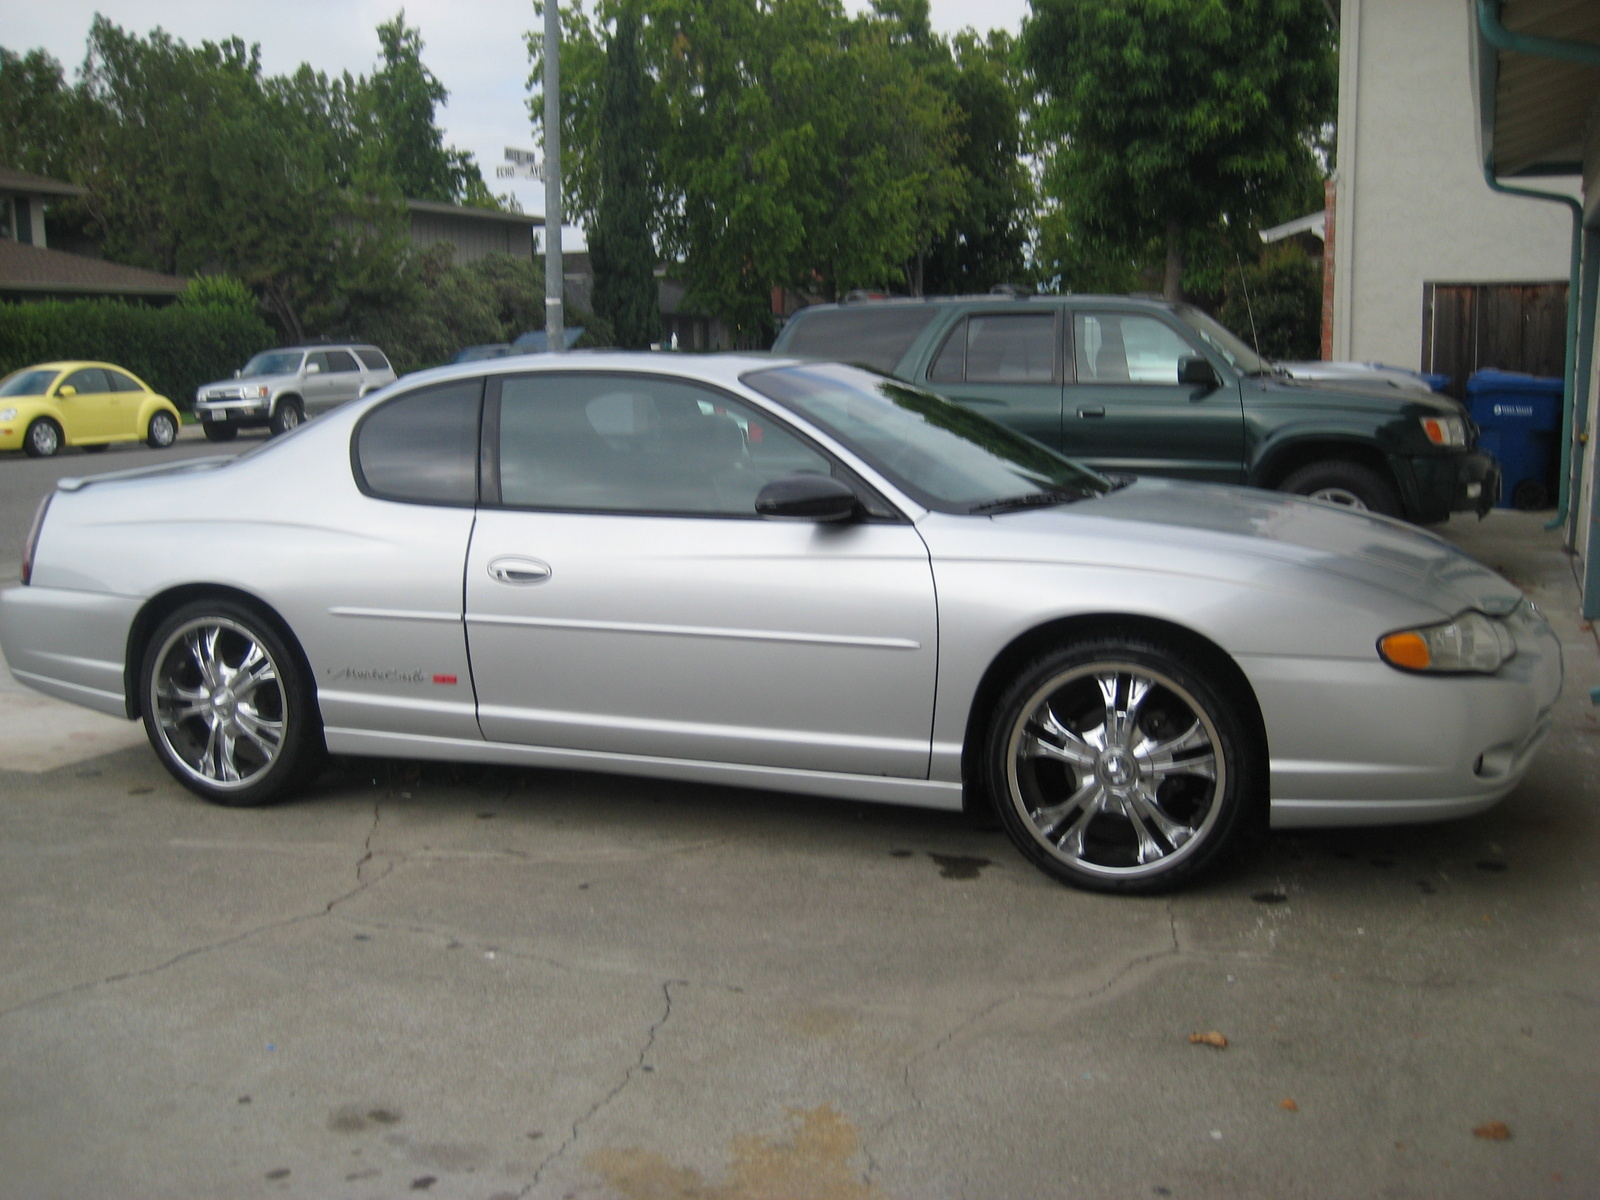 2001 Chevrolet Monte Carlo SS - Exterior Pictures - Picture of 2001 ...